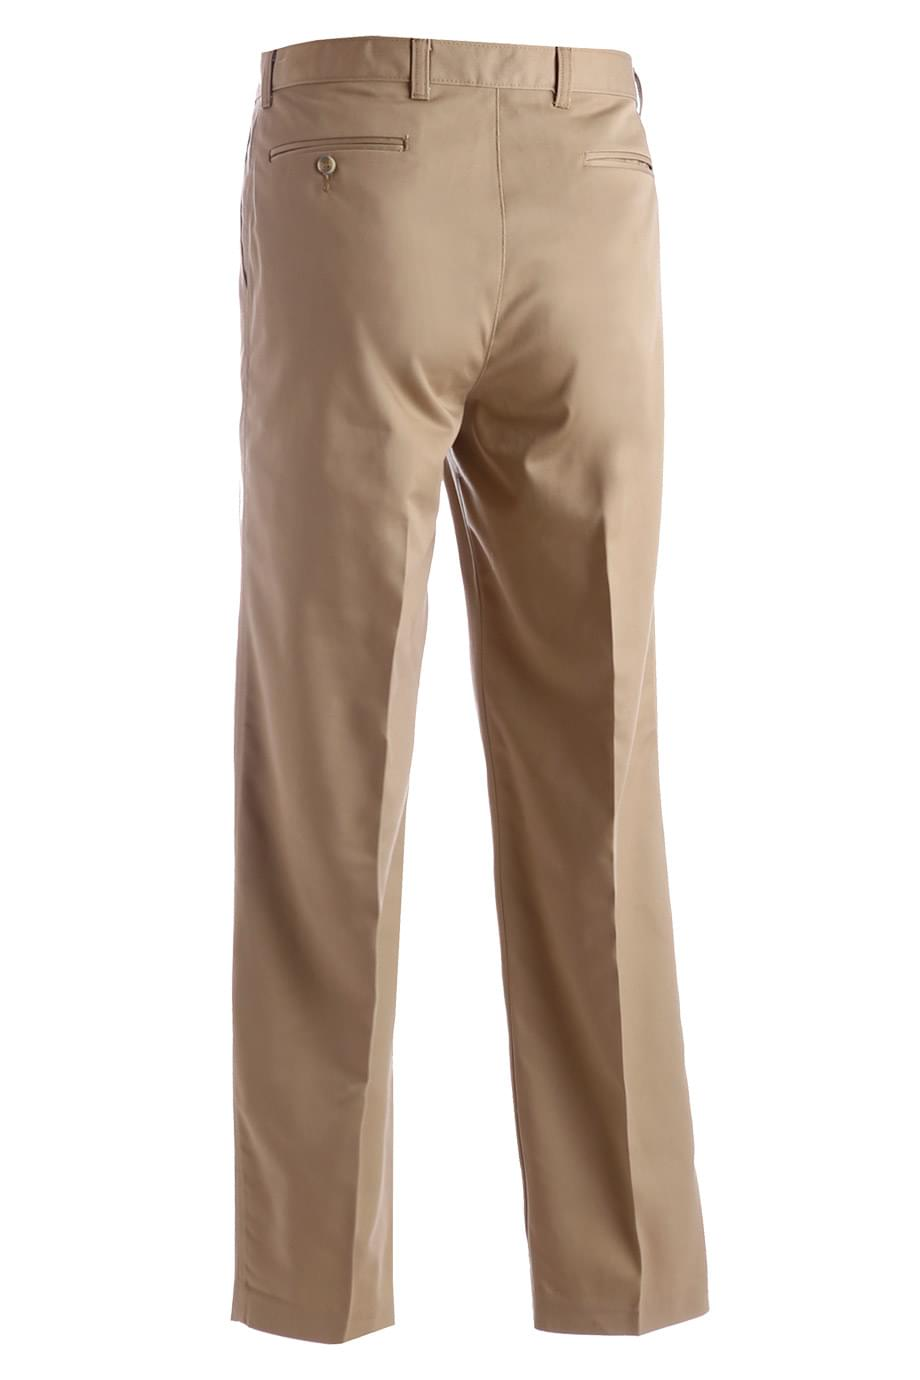 BLENDED CHINO FLAT FRONT PANT